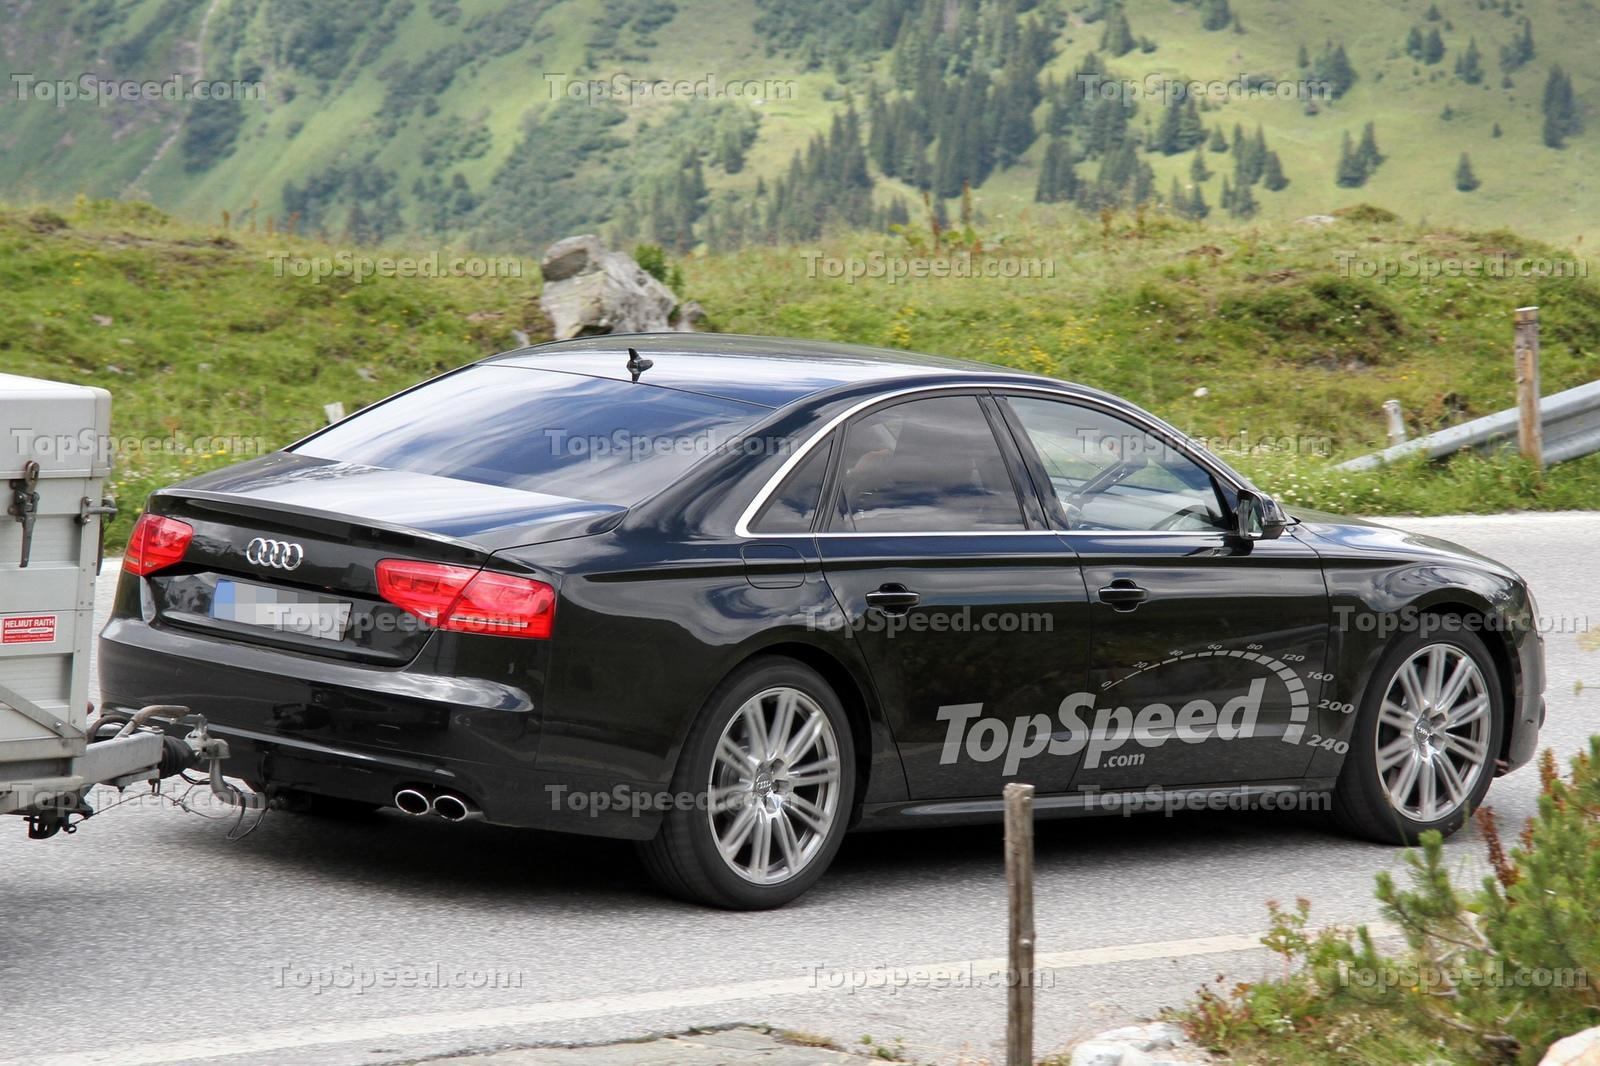 2012 Audi S8 spied brake-testing with more details